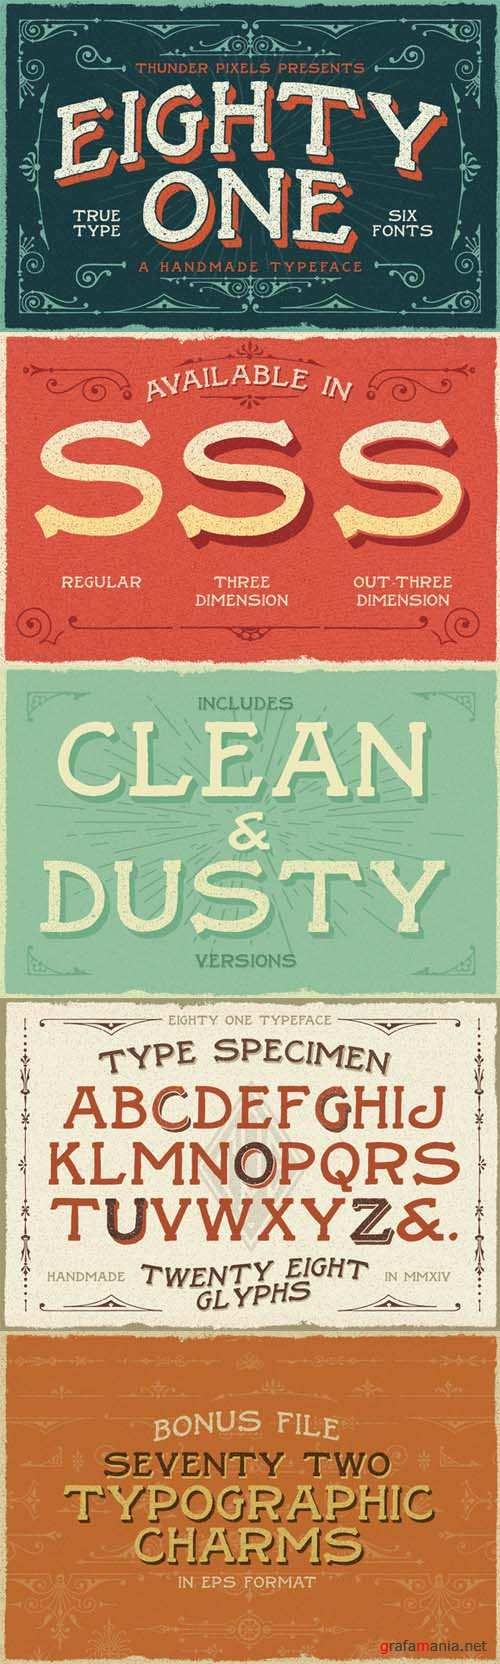 Eighty One Typeface Font